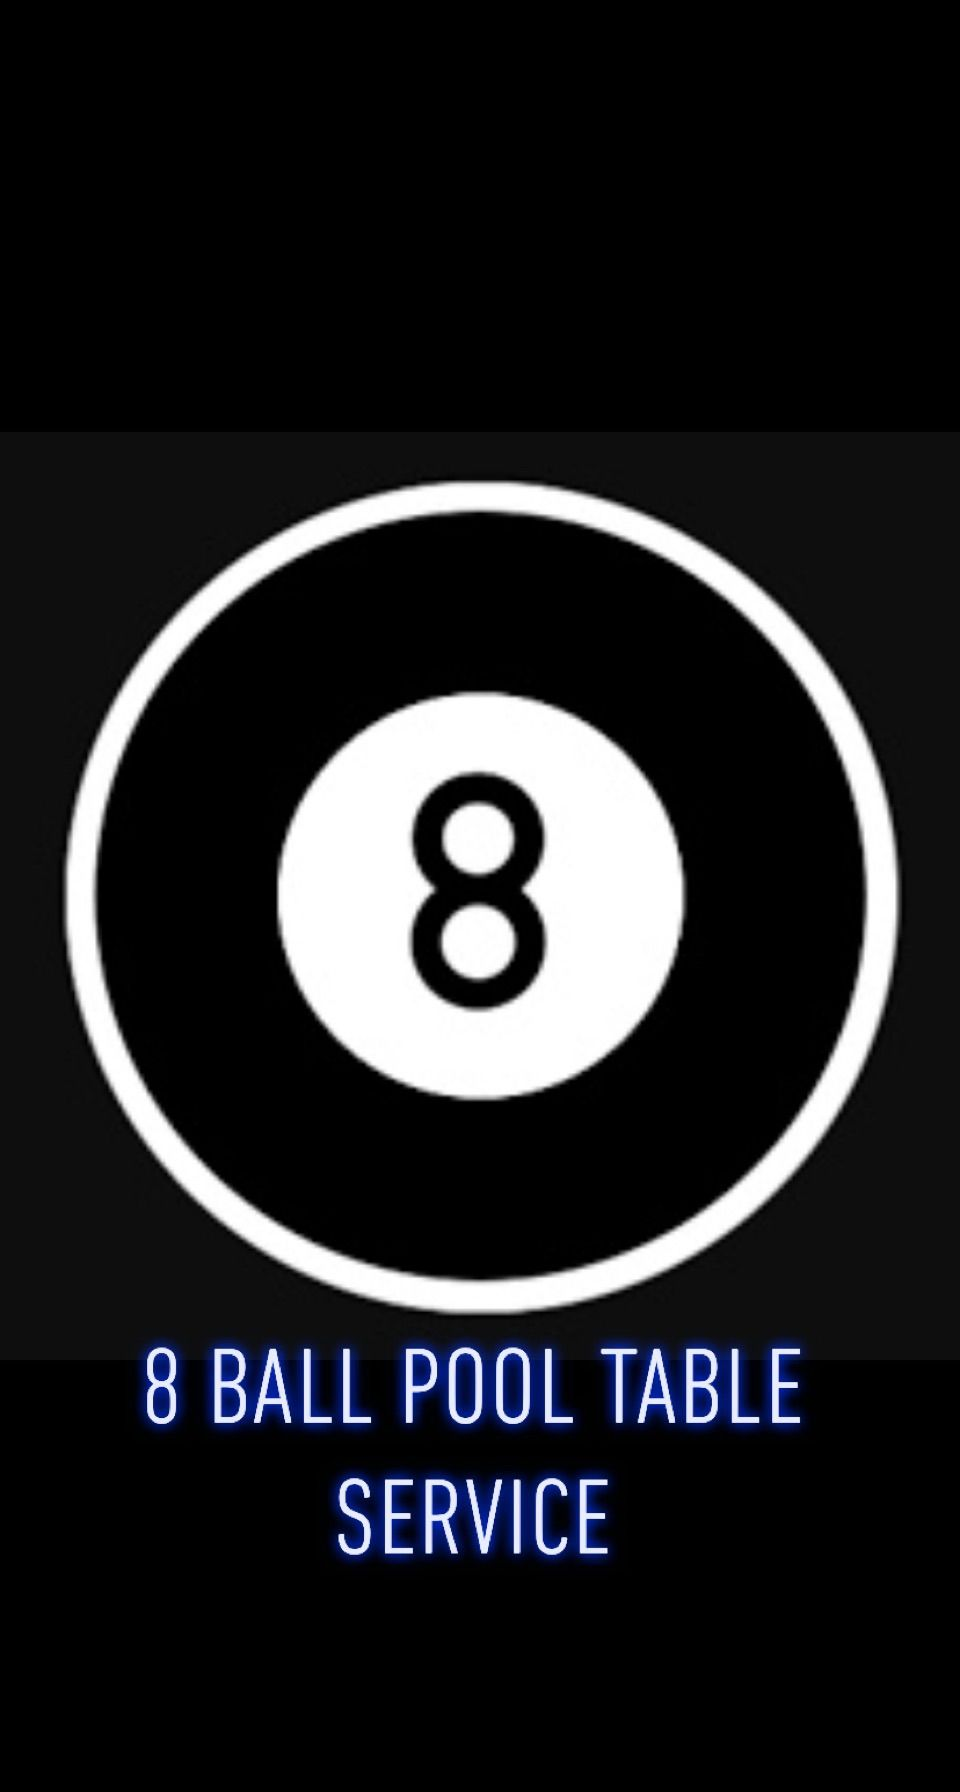 8 Ball Pool Table Service